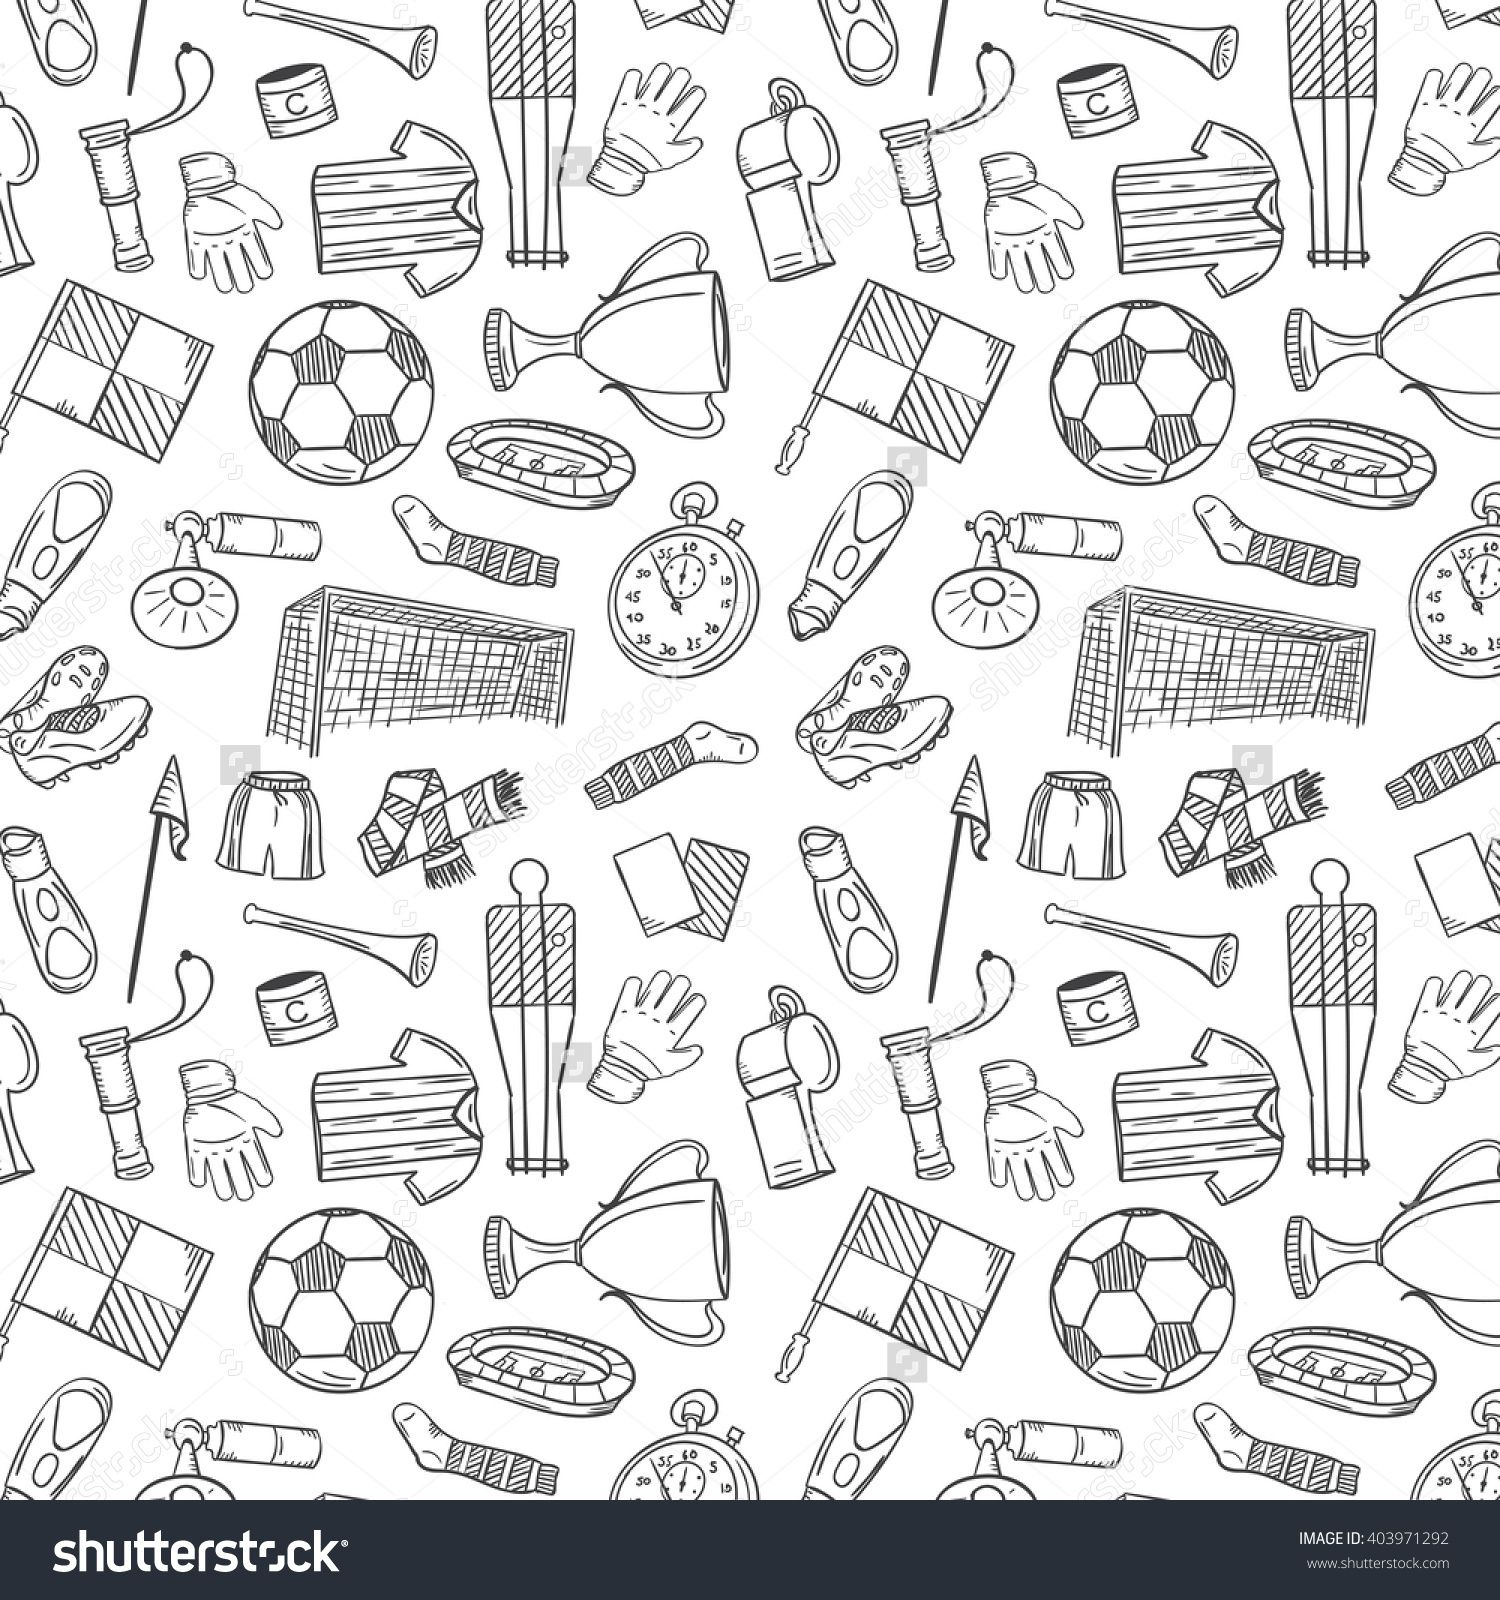 Sports Pattern With Soccer Football Symbols In Hand Draw Style Vector Illustration 403971292 Shutterstock How To Draw Hands Symbols Pattern